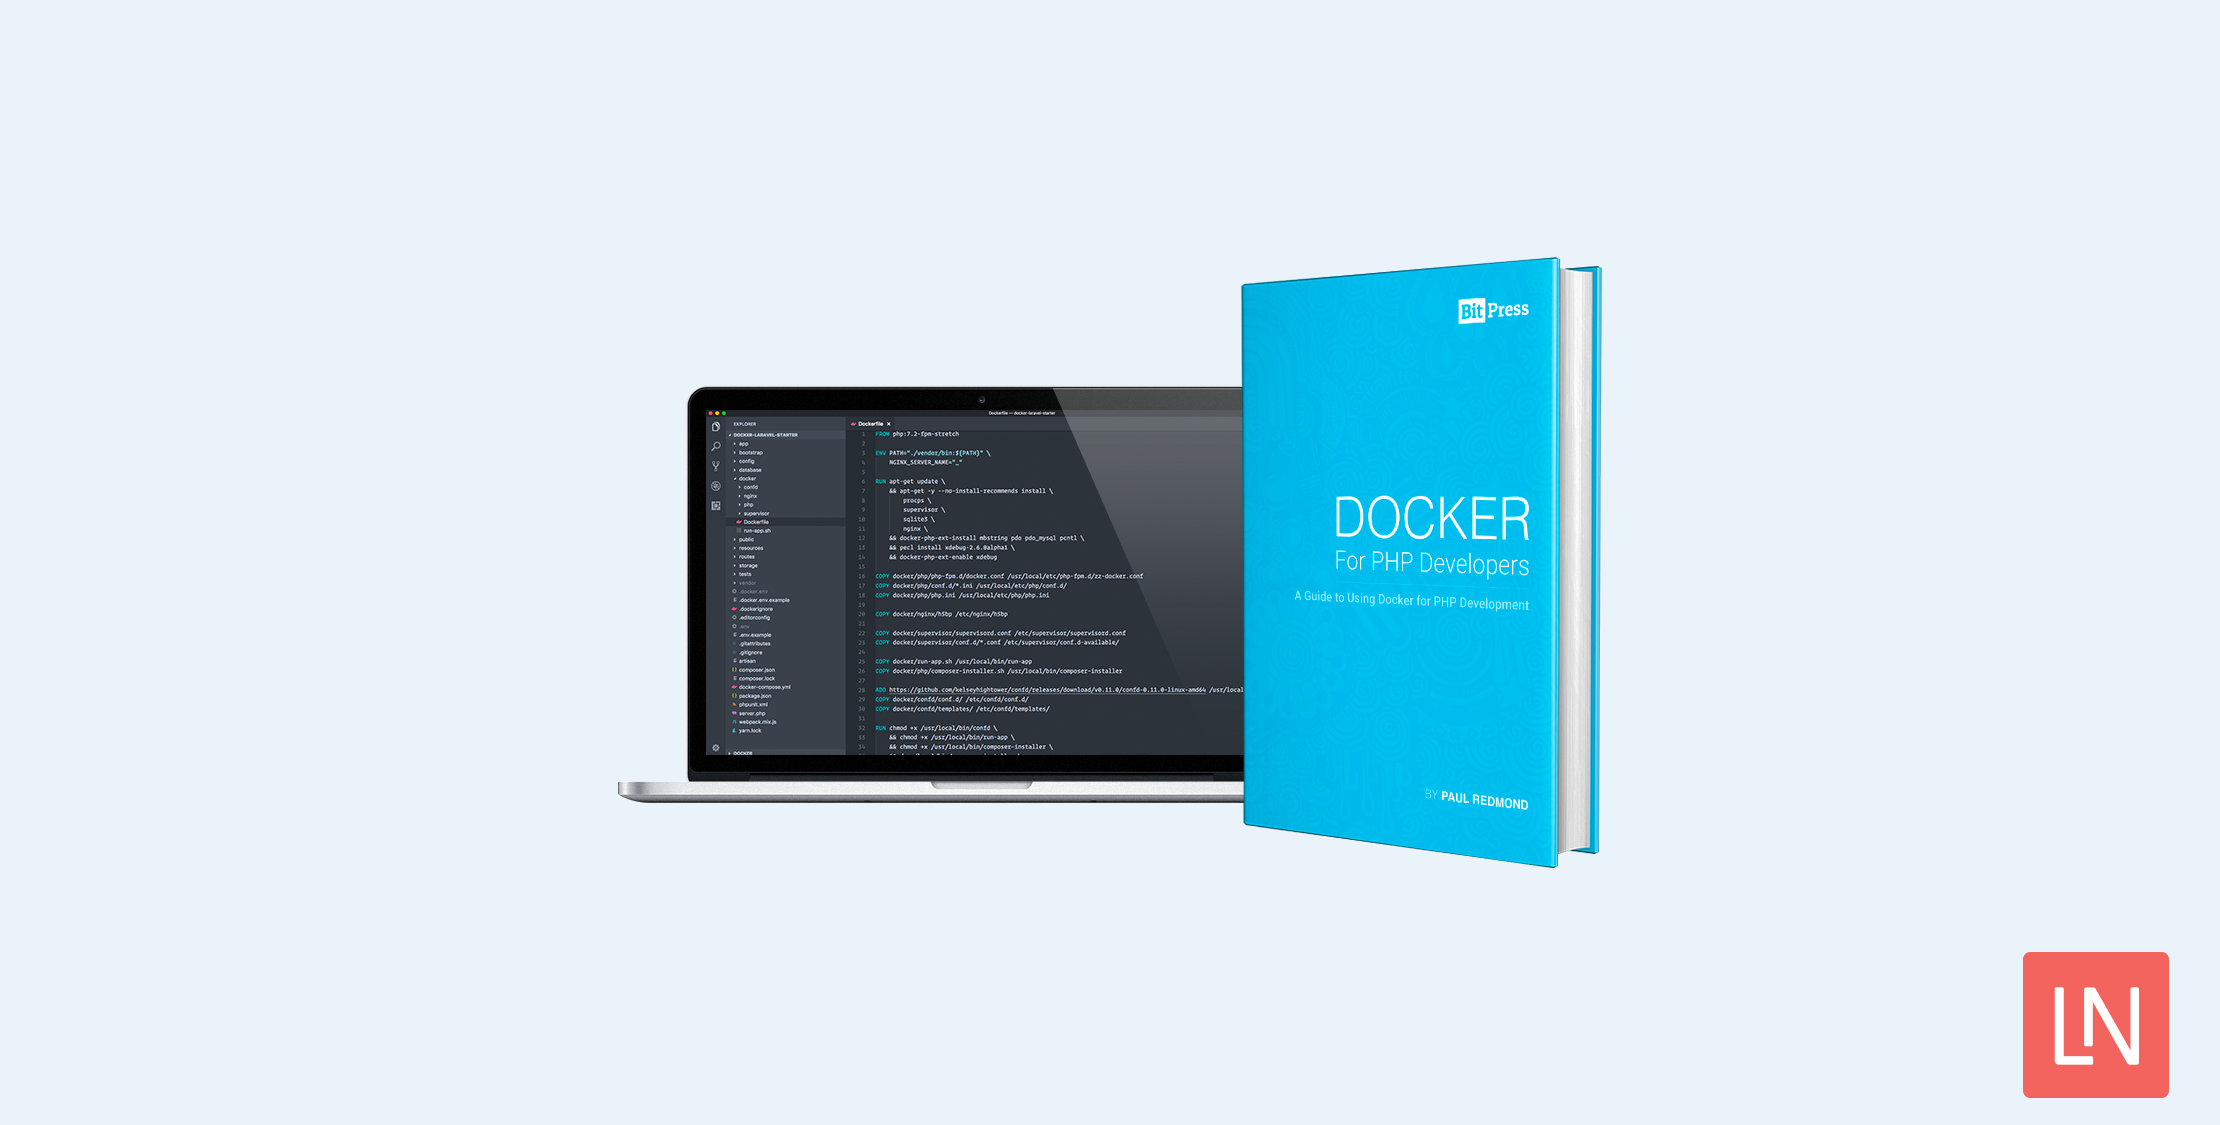 docker-php-developers-featured.png